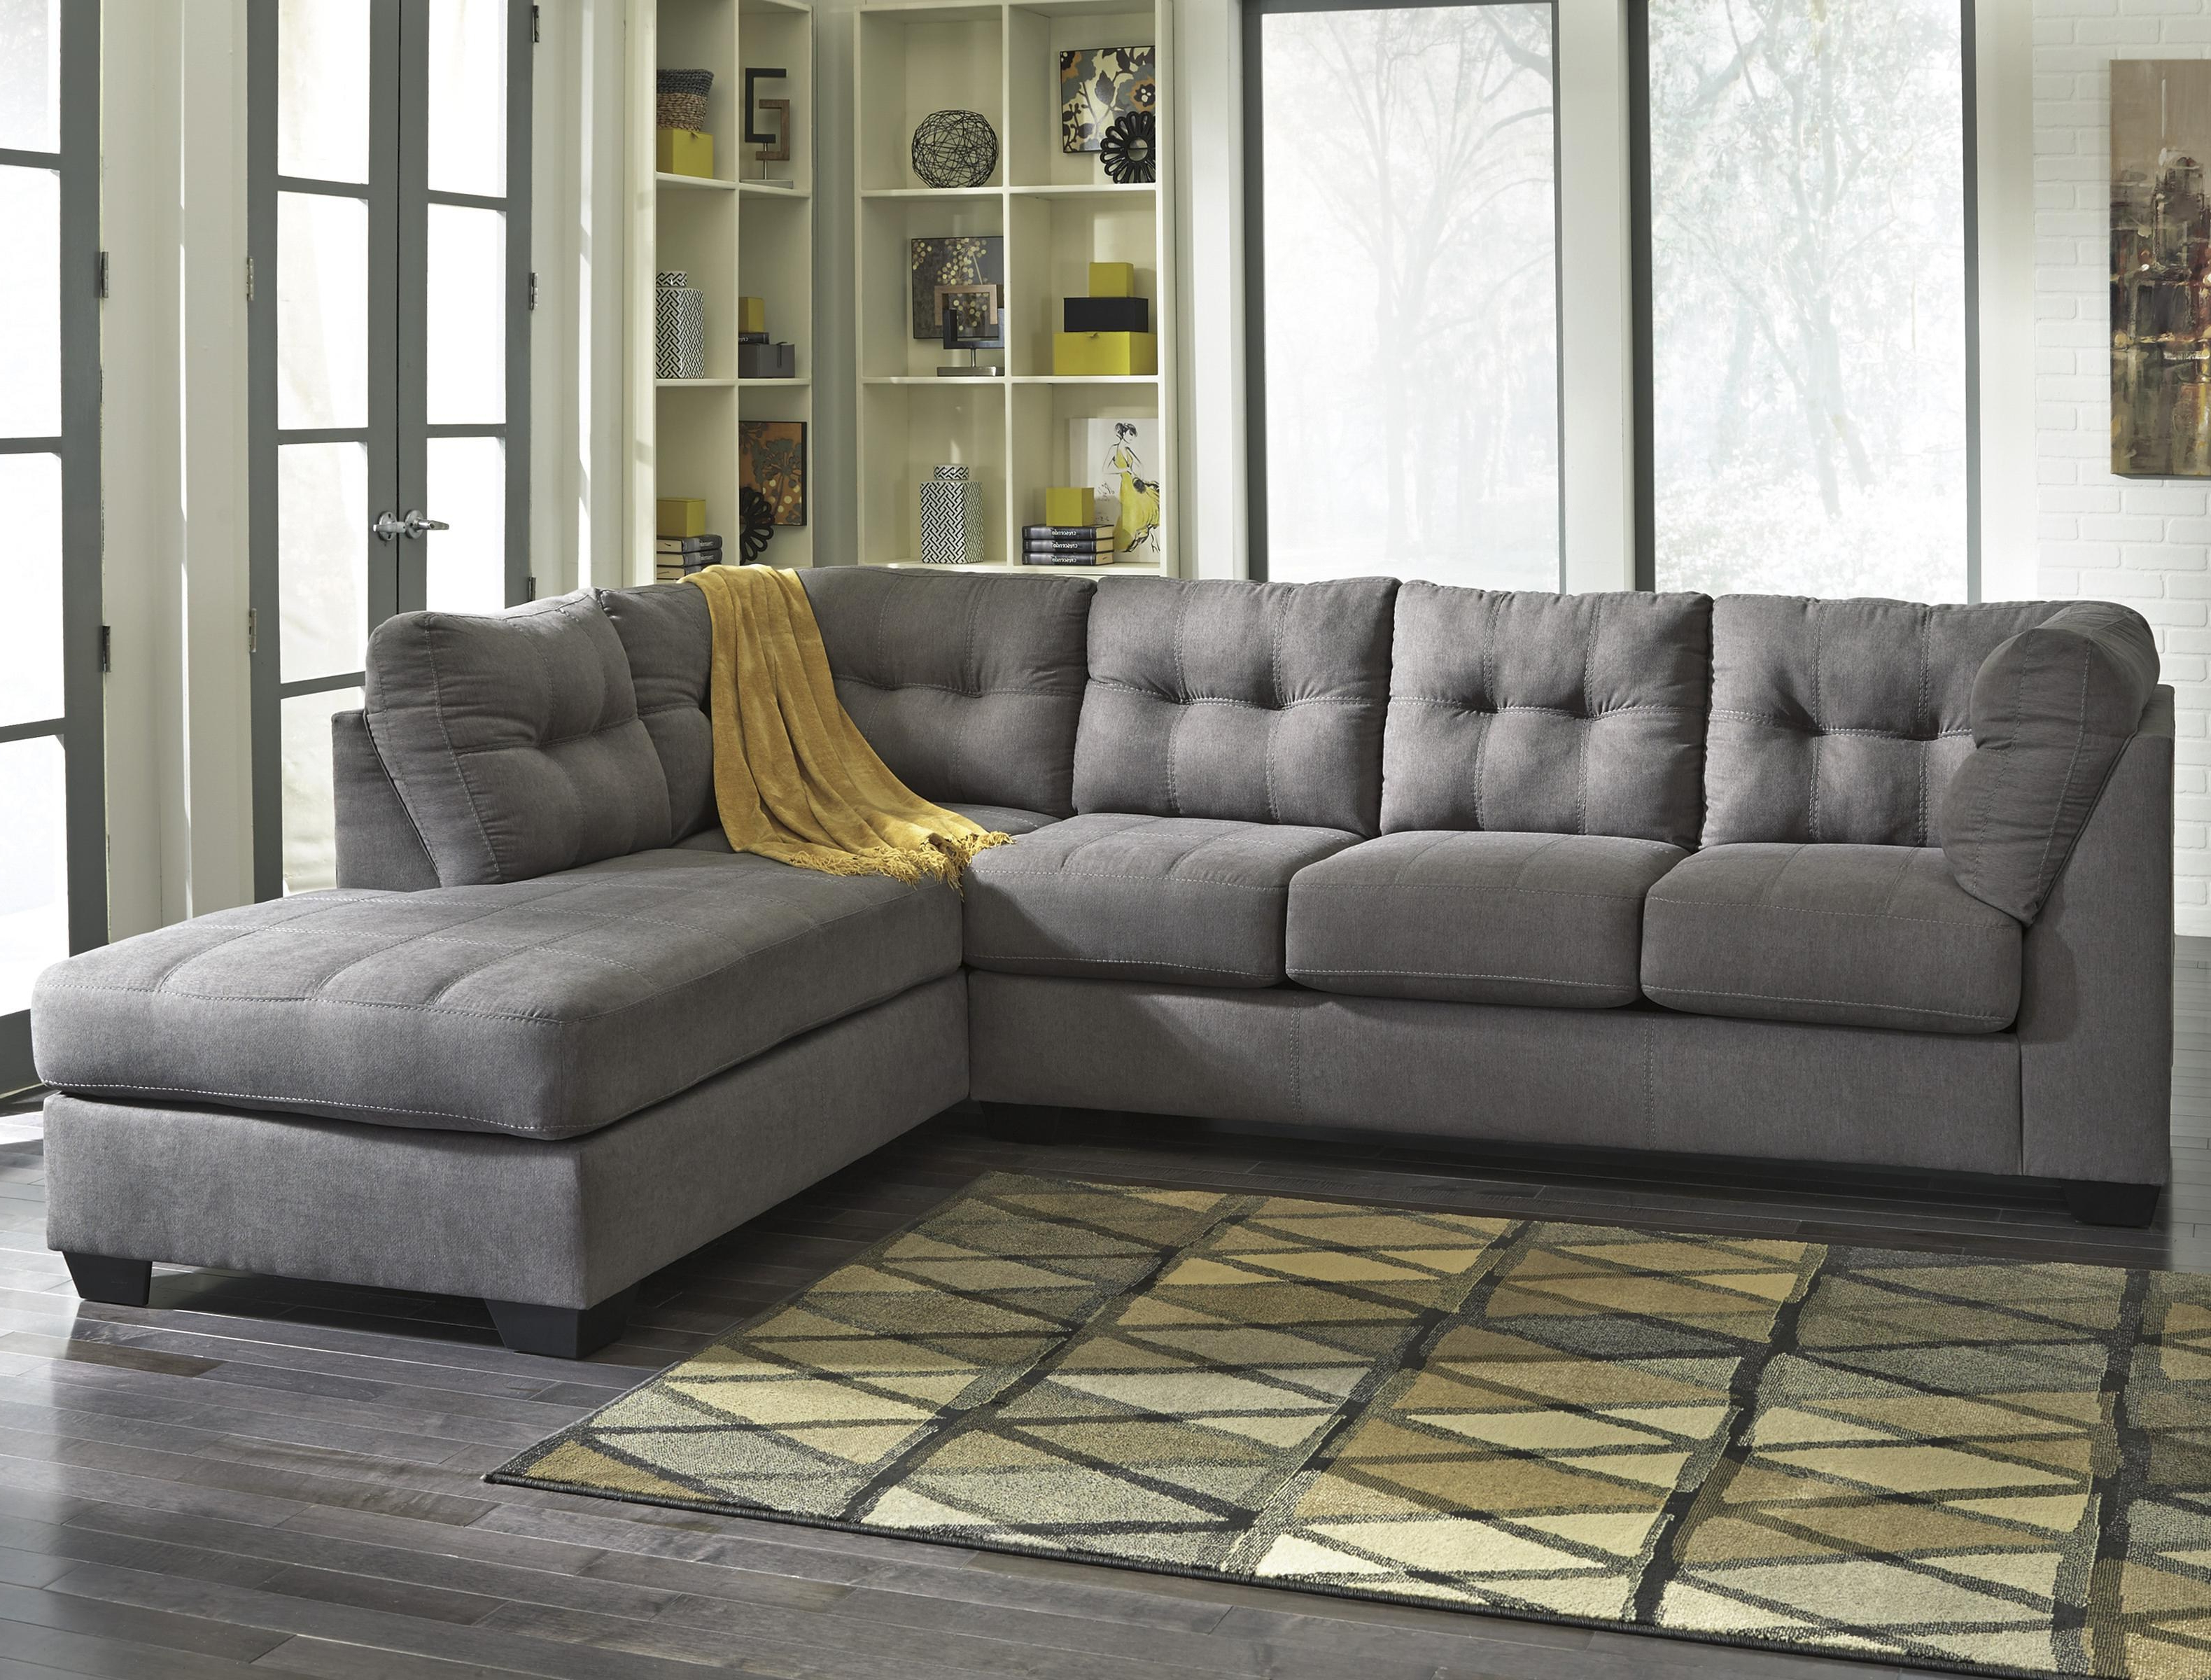 Kerri 2 Piece Sectionals With Laf Chaise Within 2019 What To Know Before Buying A 3 Piece Sectional Sofa – Elites Home Decor (View 6 of 20)